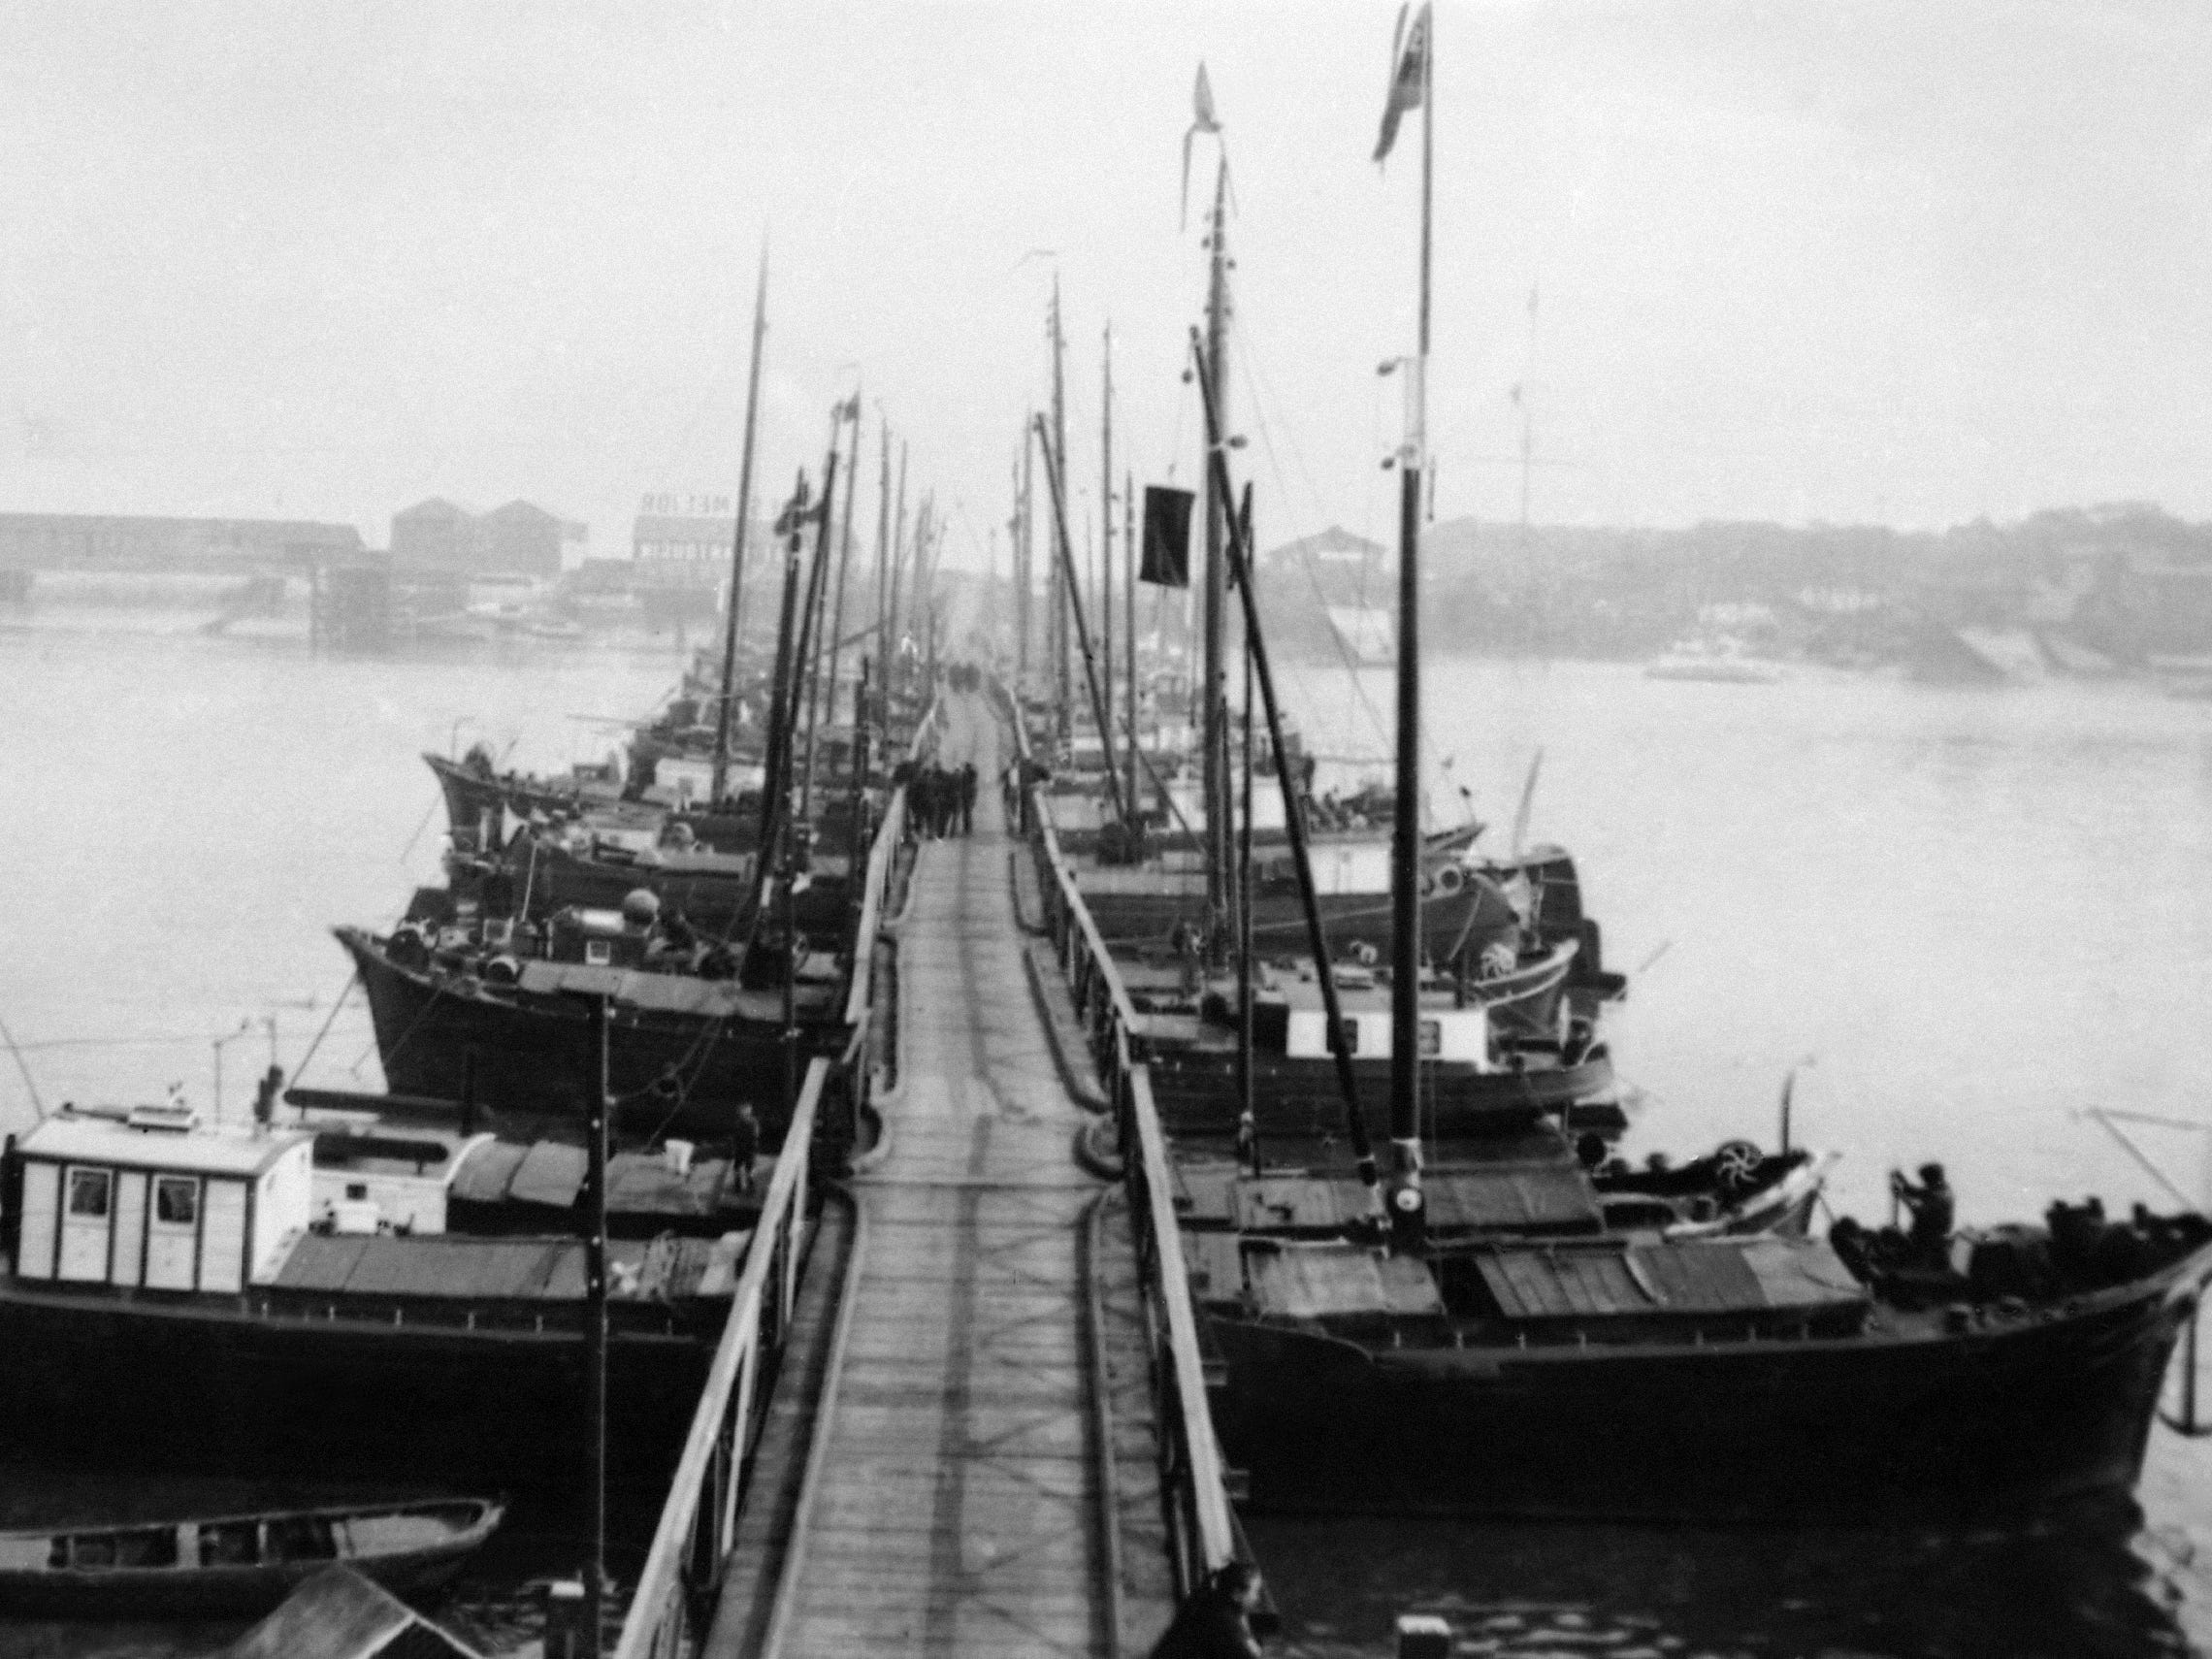 In this 1914 photo, small boats, pushed together, create a pontoon bridge over the Scheldt River in Antwerp, Belgium. The bridge was constructed during World War One for residents and troops to escape the German army.